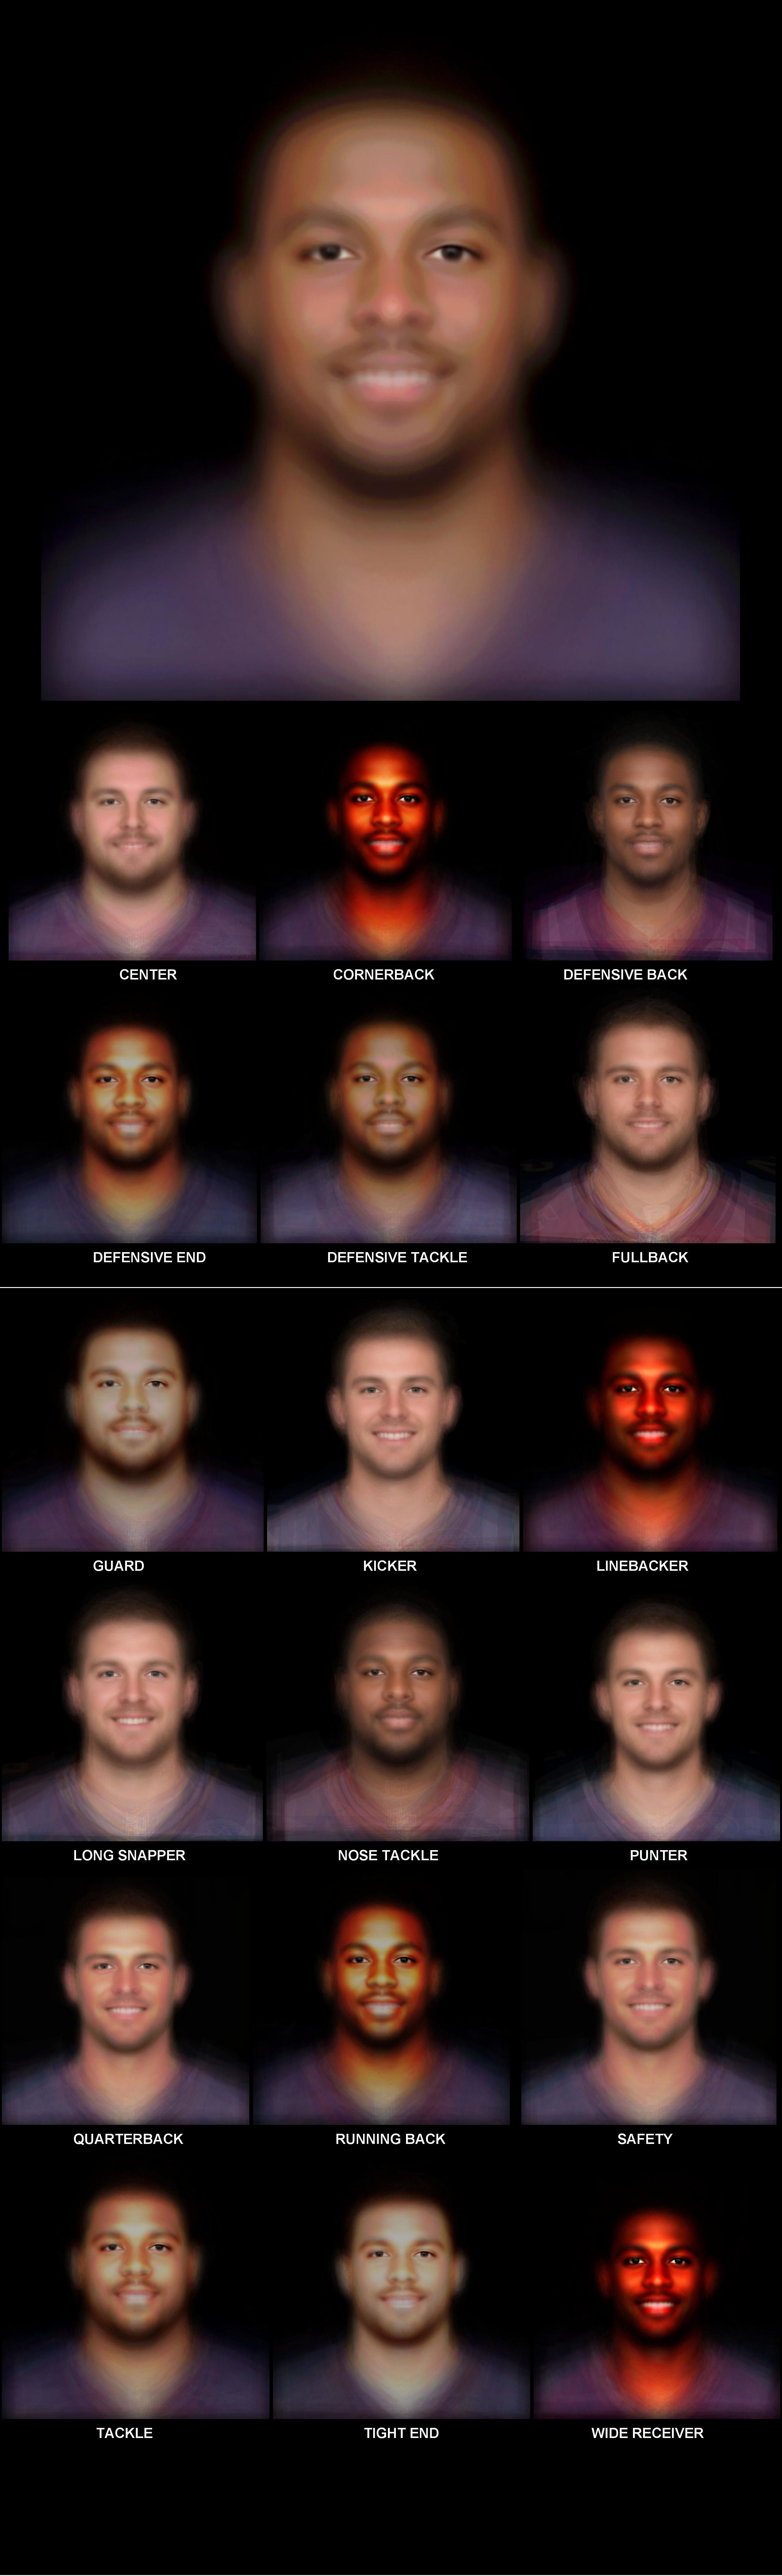 Combined faces of top 200 NFL players Data